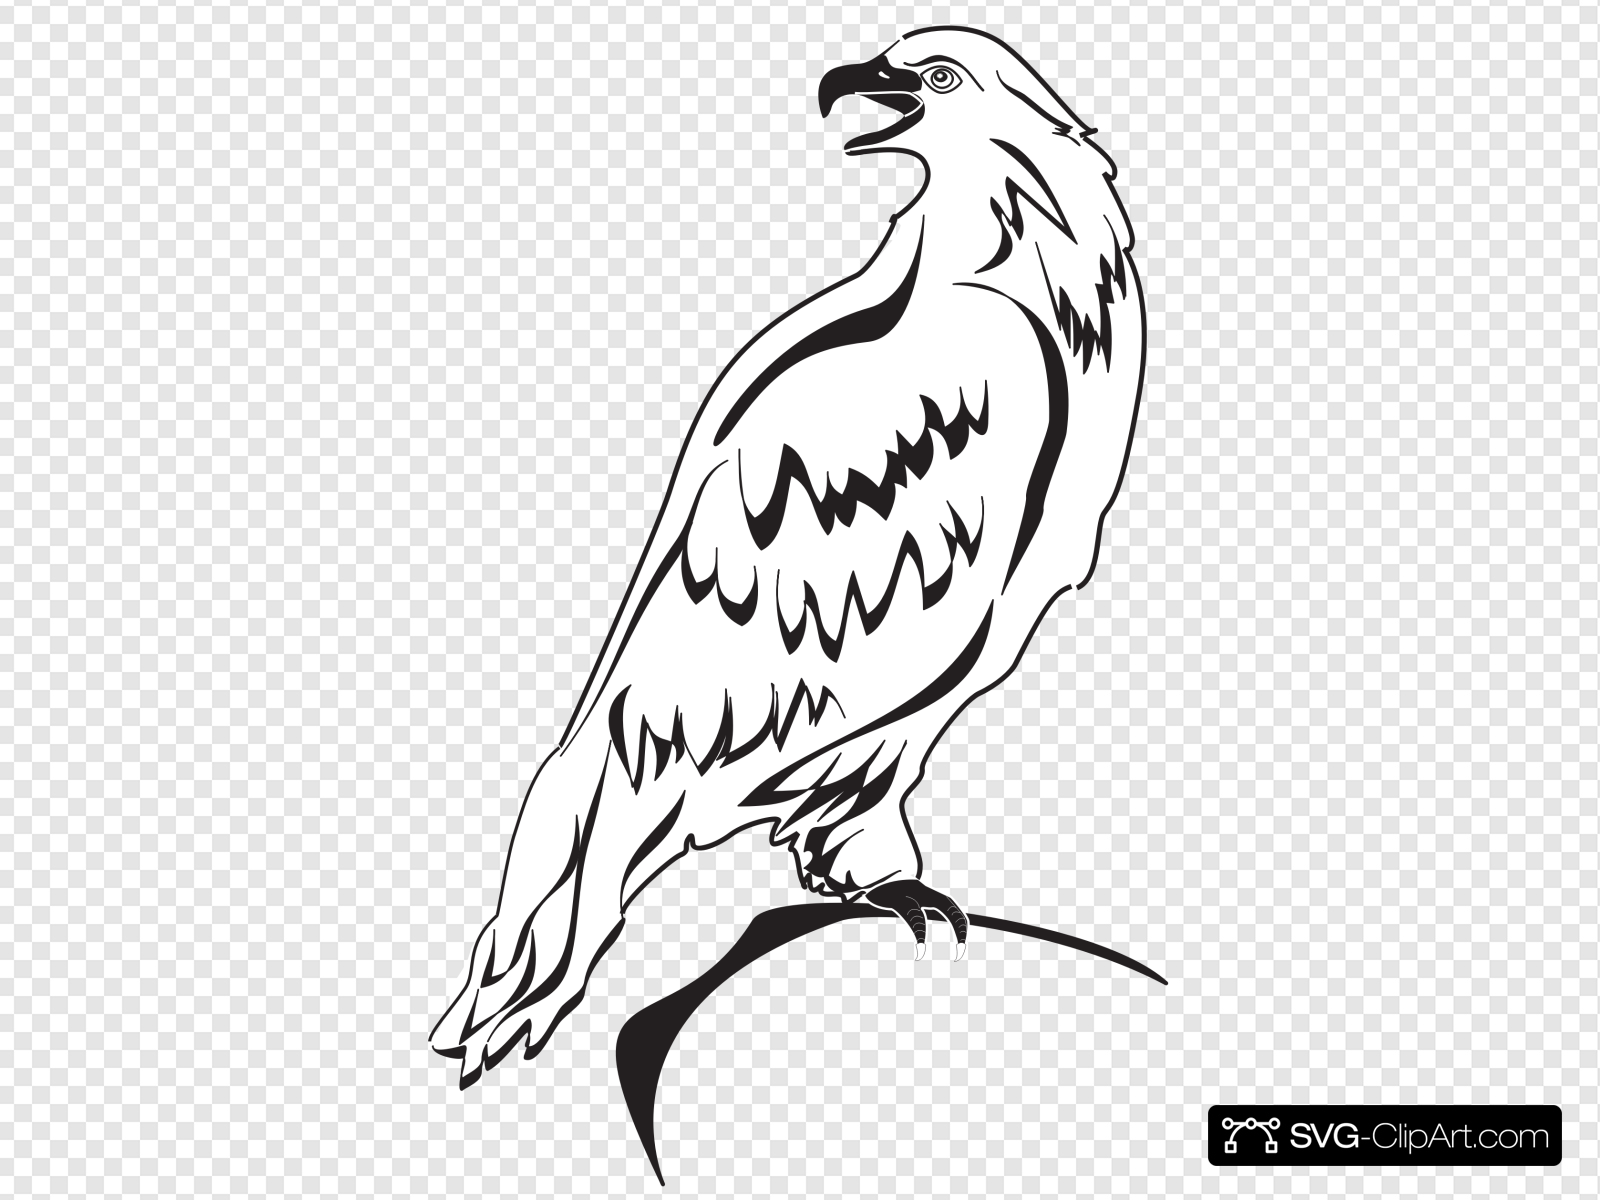 Outline clip art icon. Eagle clipart perched